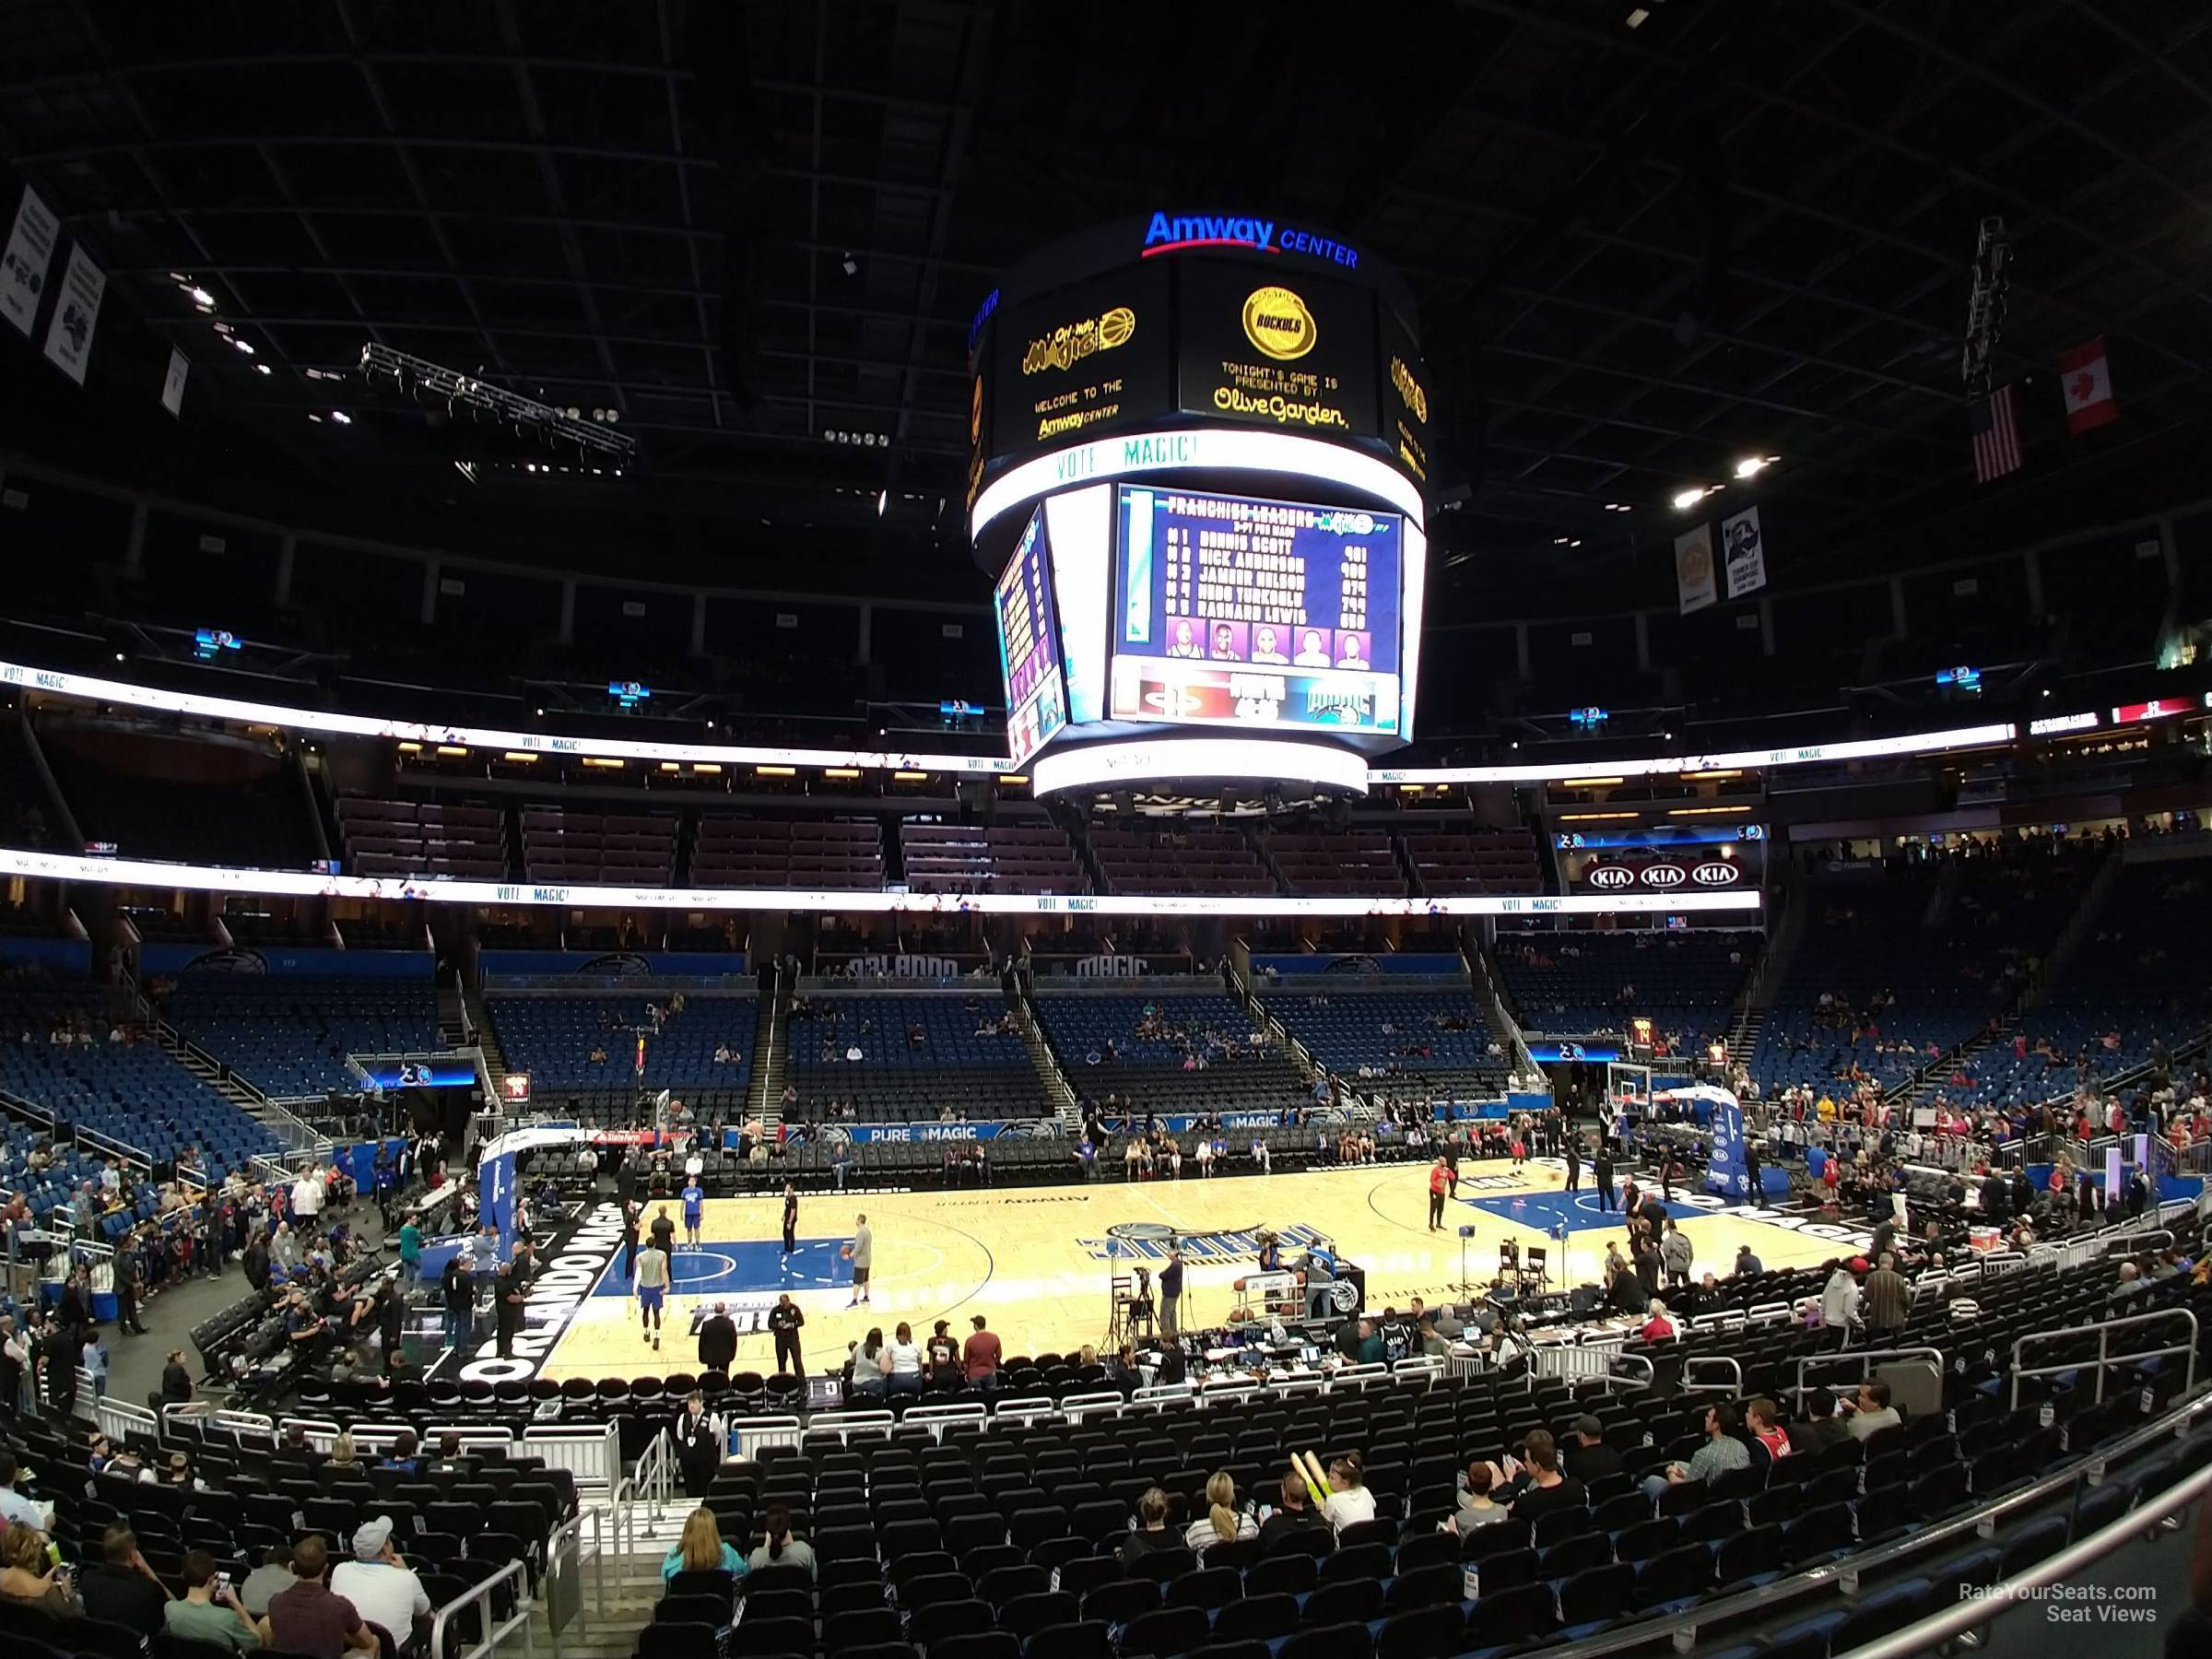 Seat View for Amway Center Section 106, Row 16